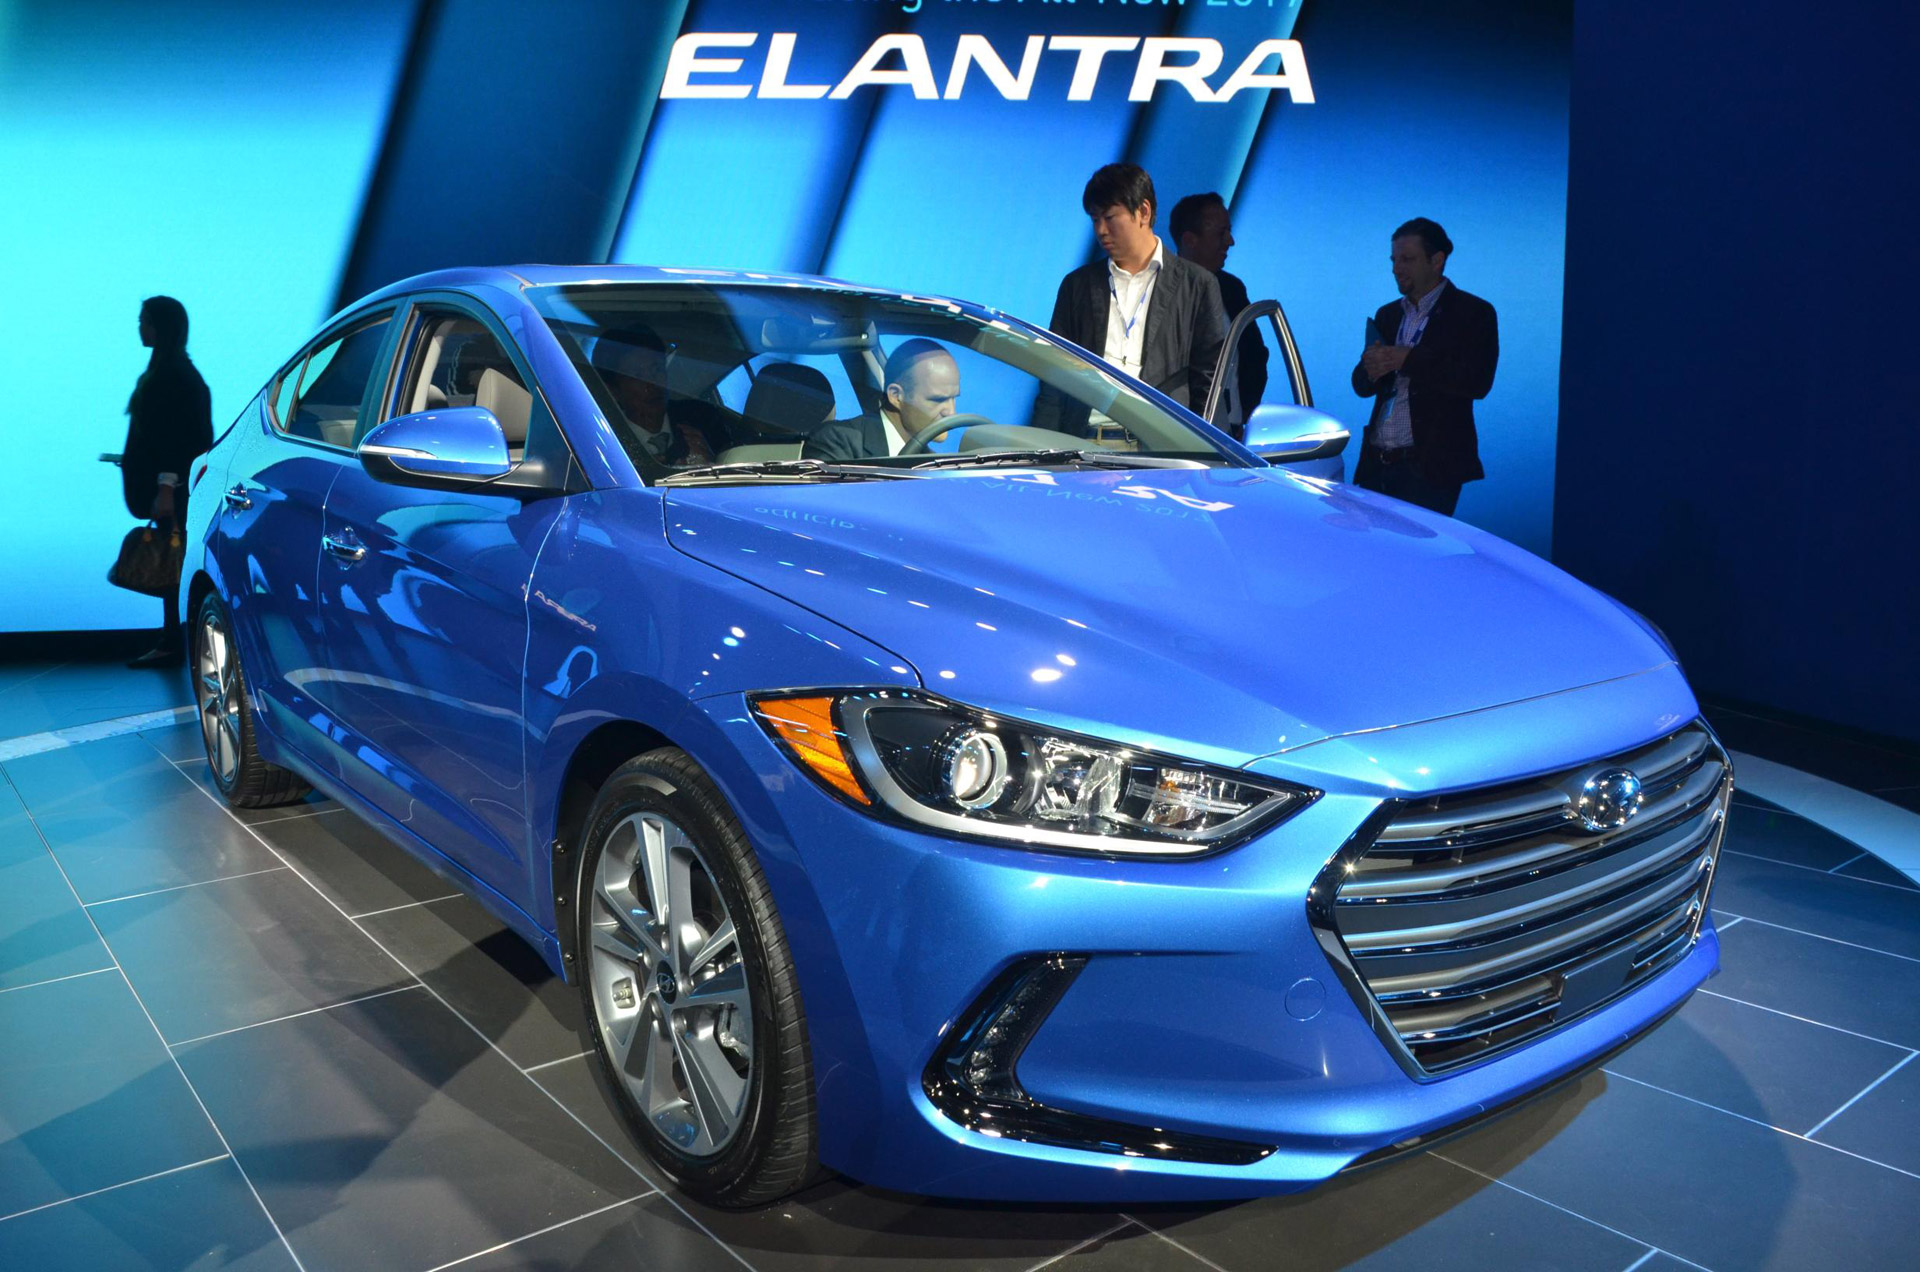 2019 Hyundai Elantra Coupe photo - 2